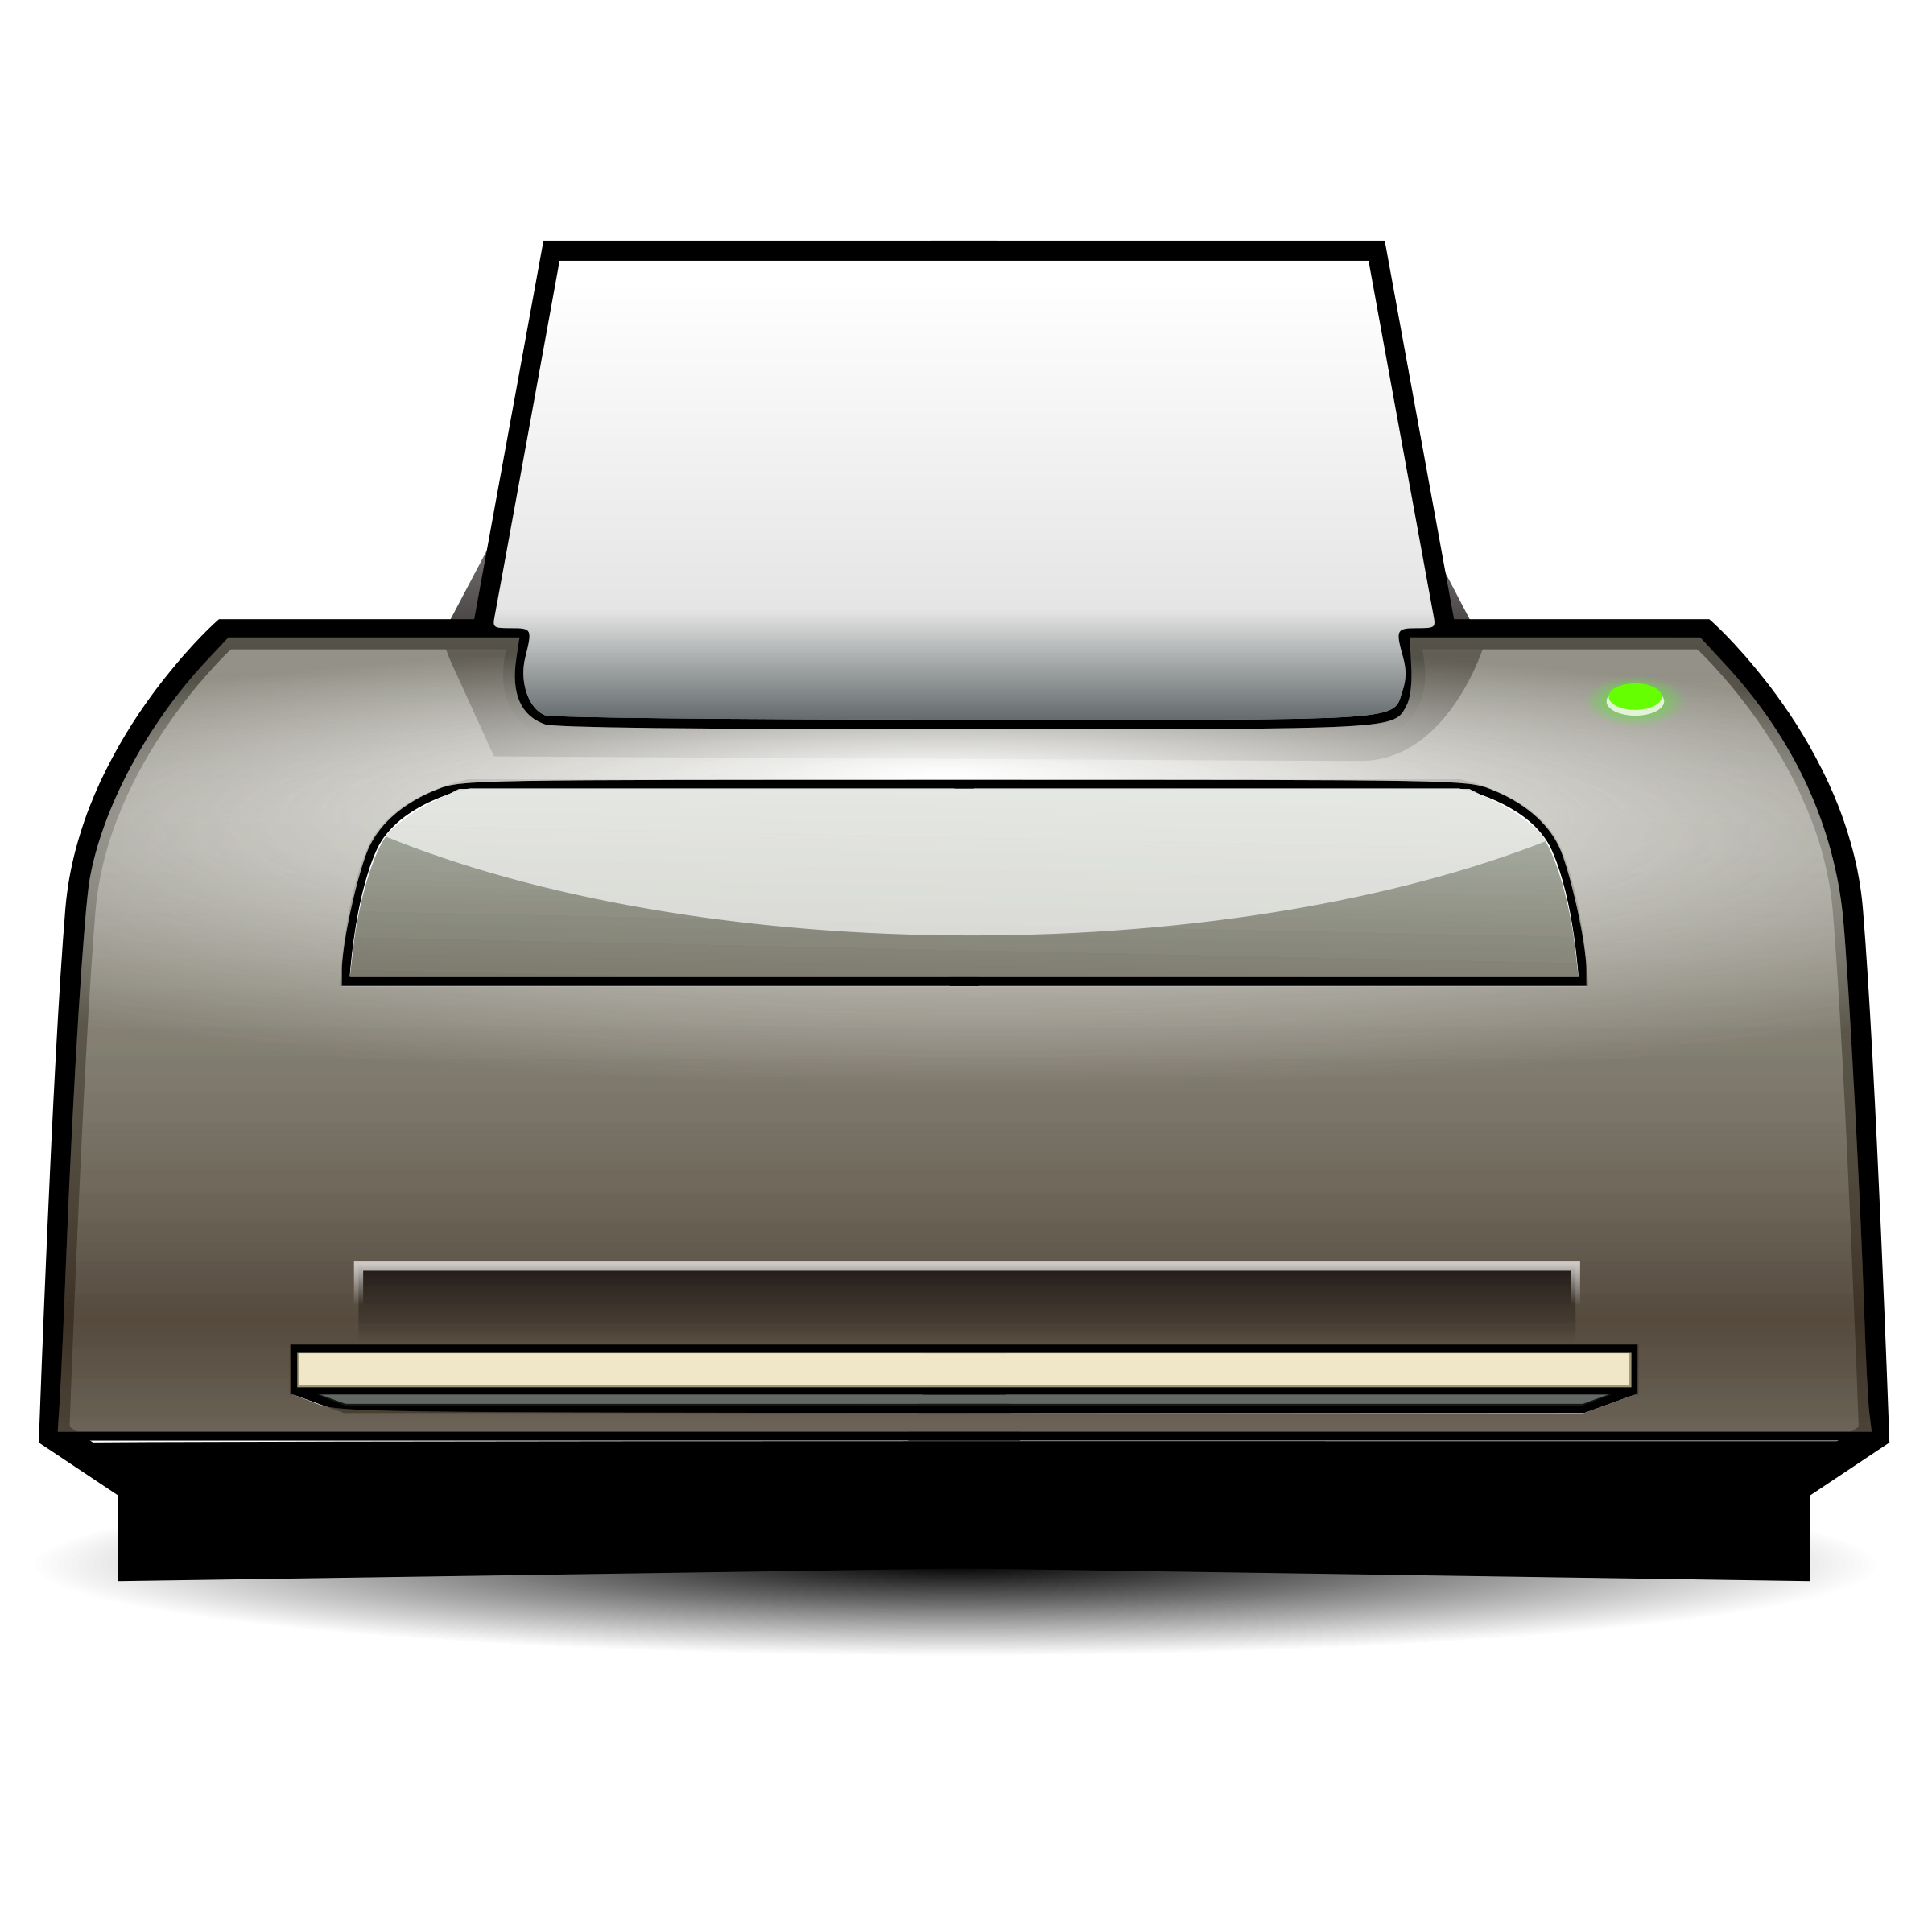 Images For > Laser Printer Clipart